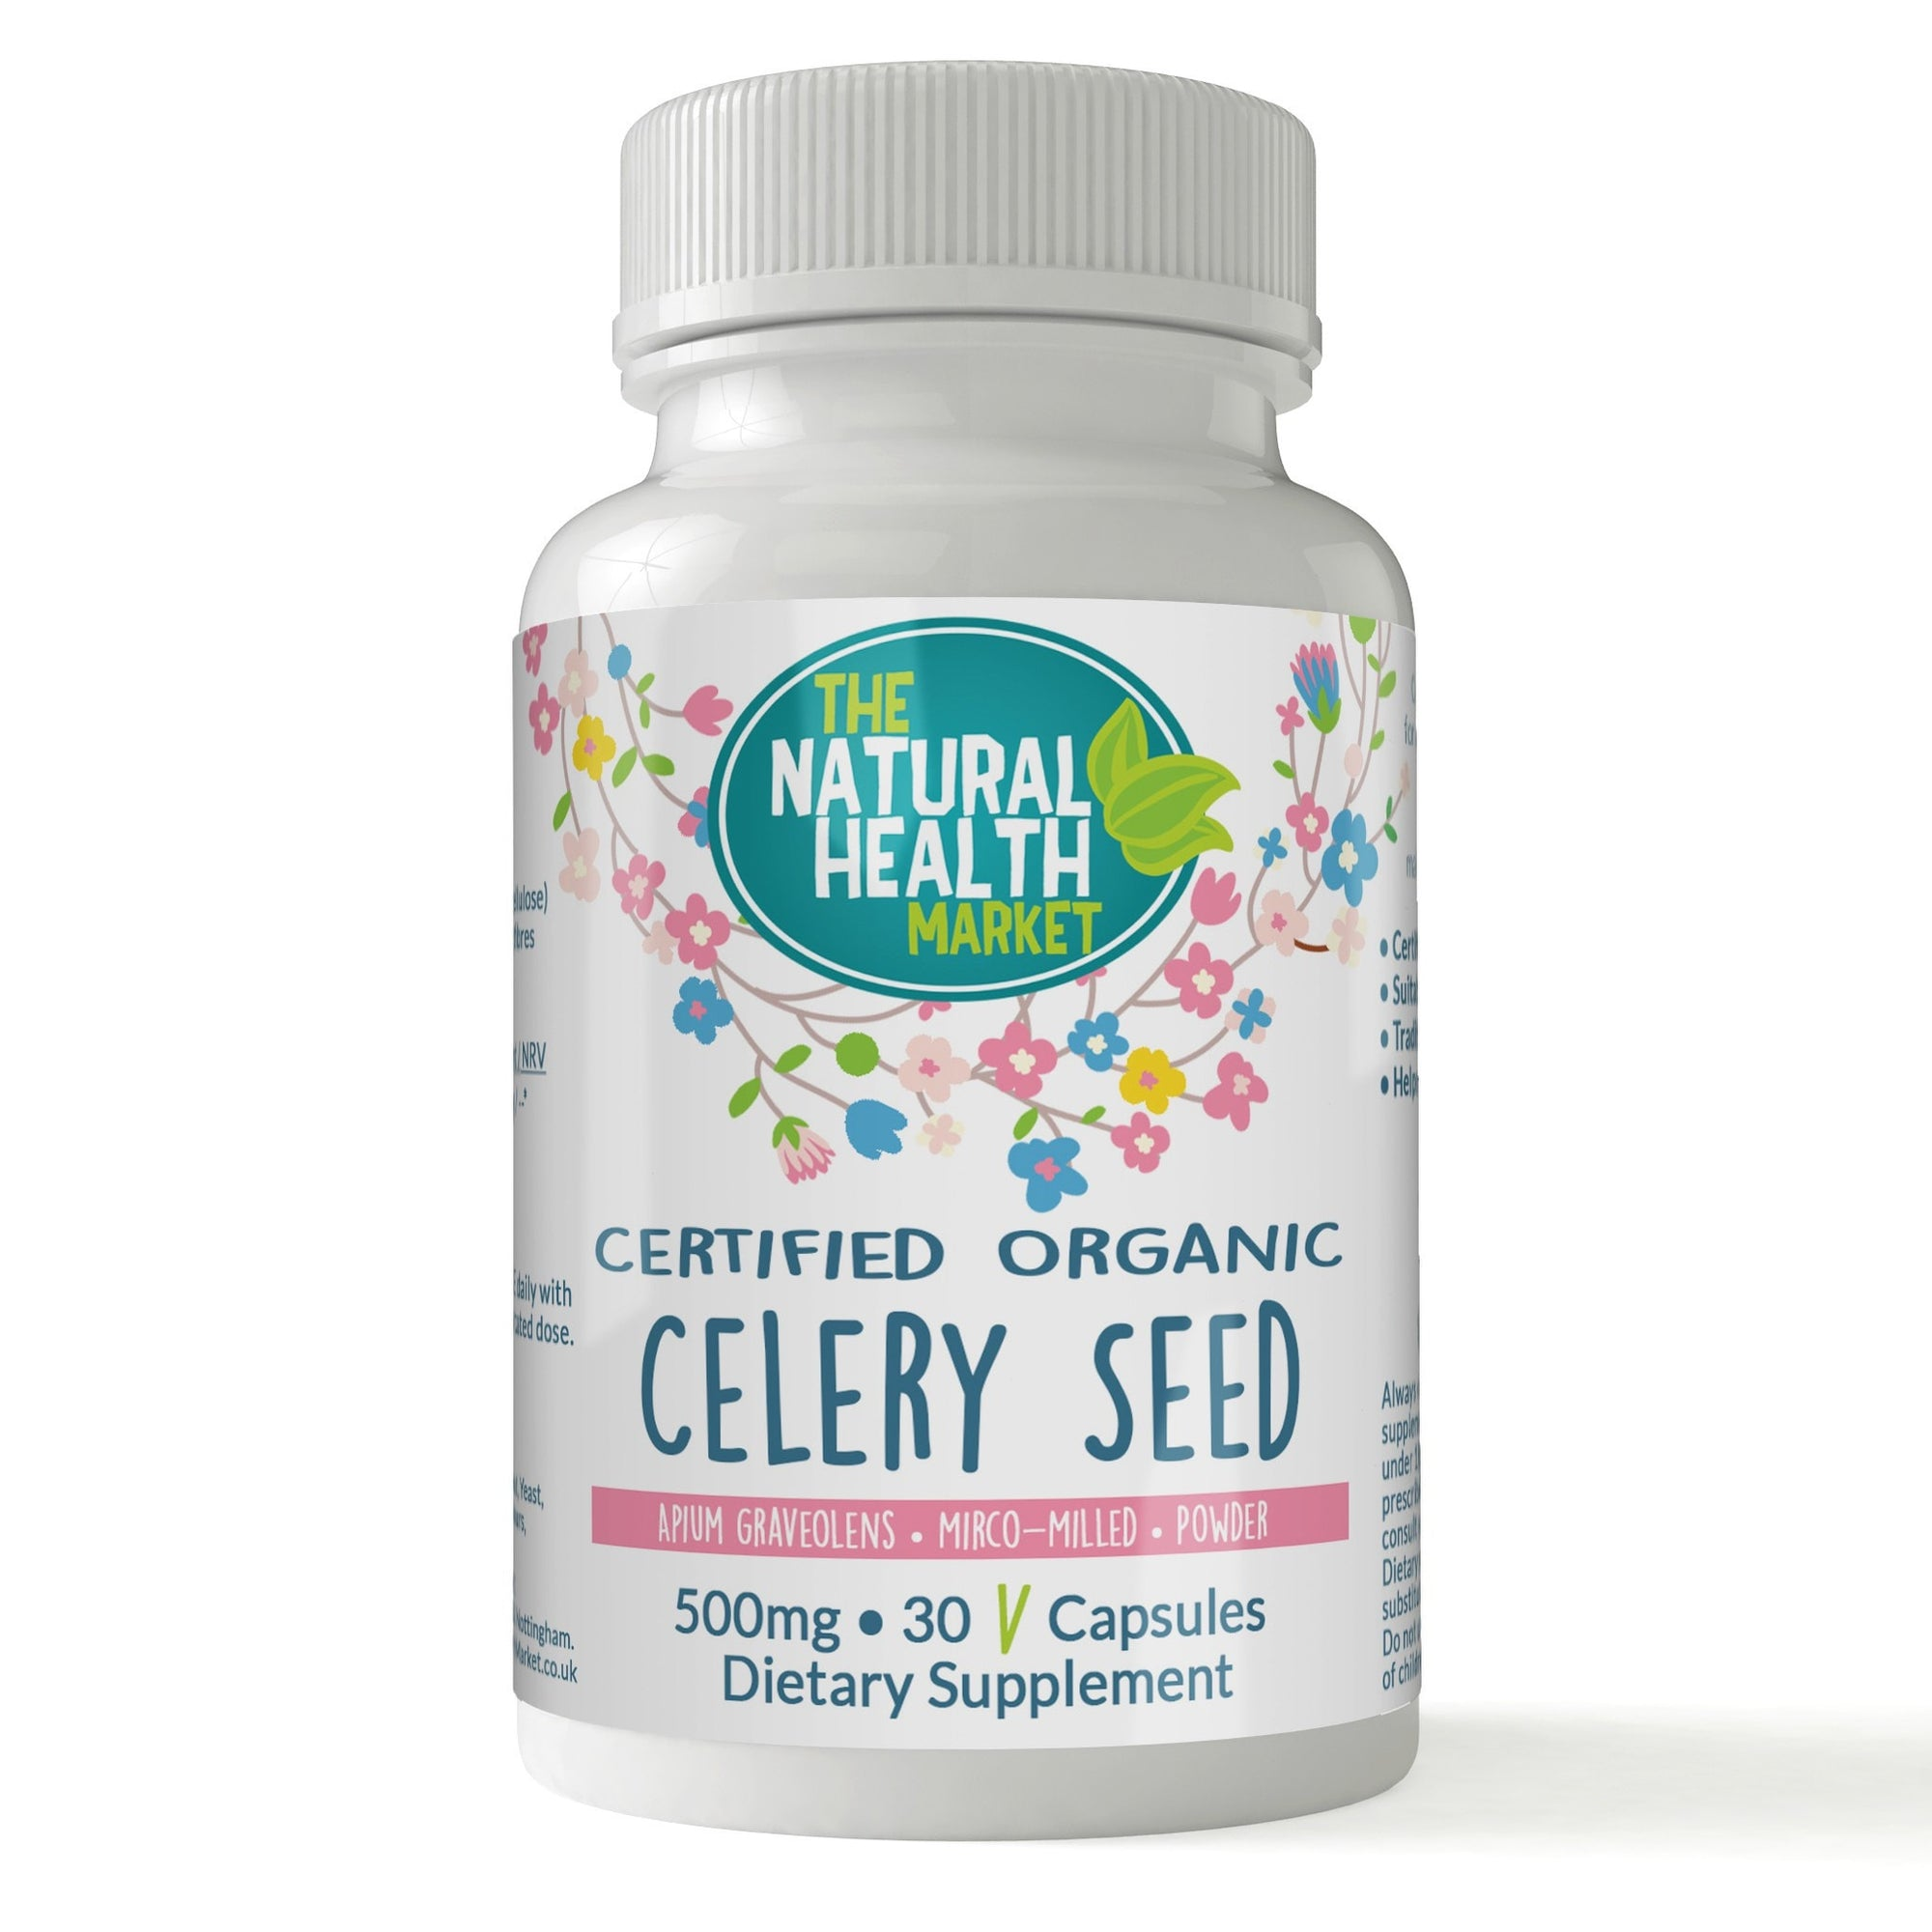 Organic Celery Seed 30 Capsules 500mg By The Natural Health Market